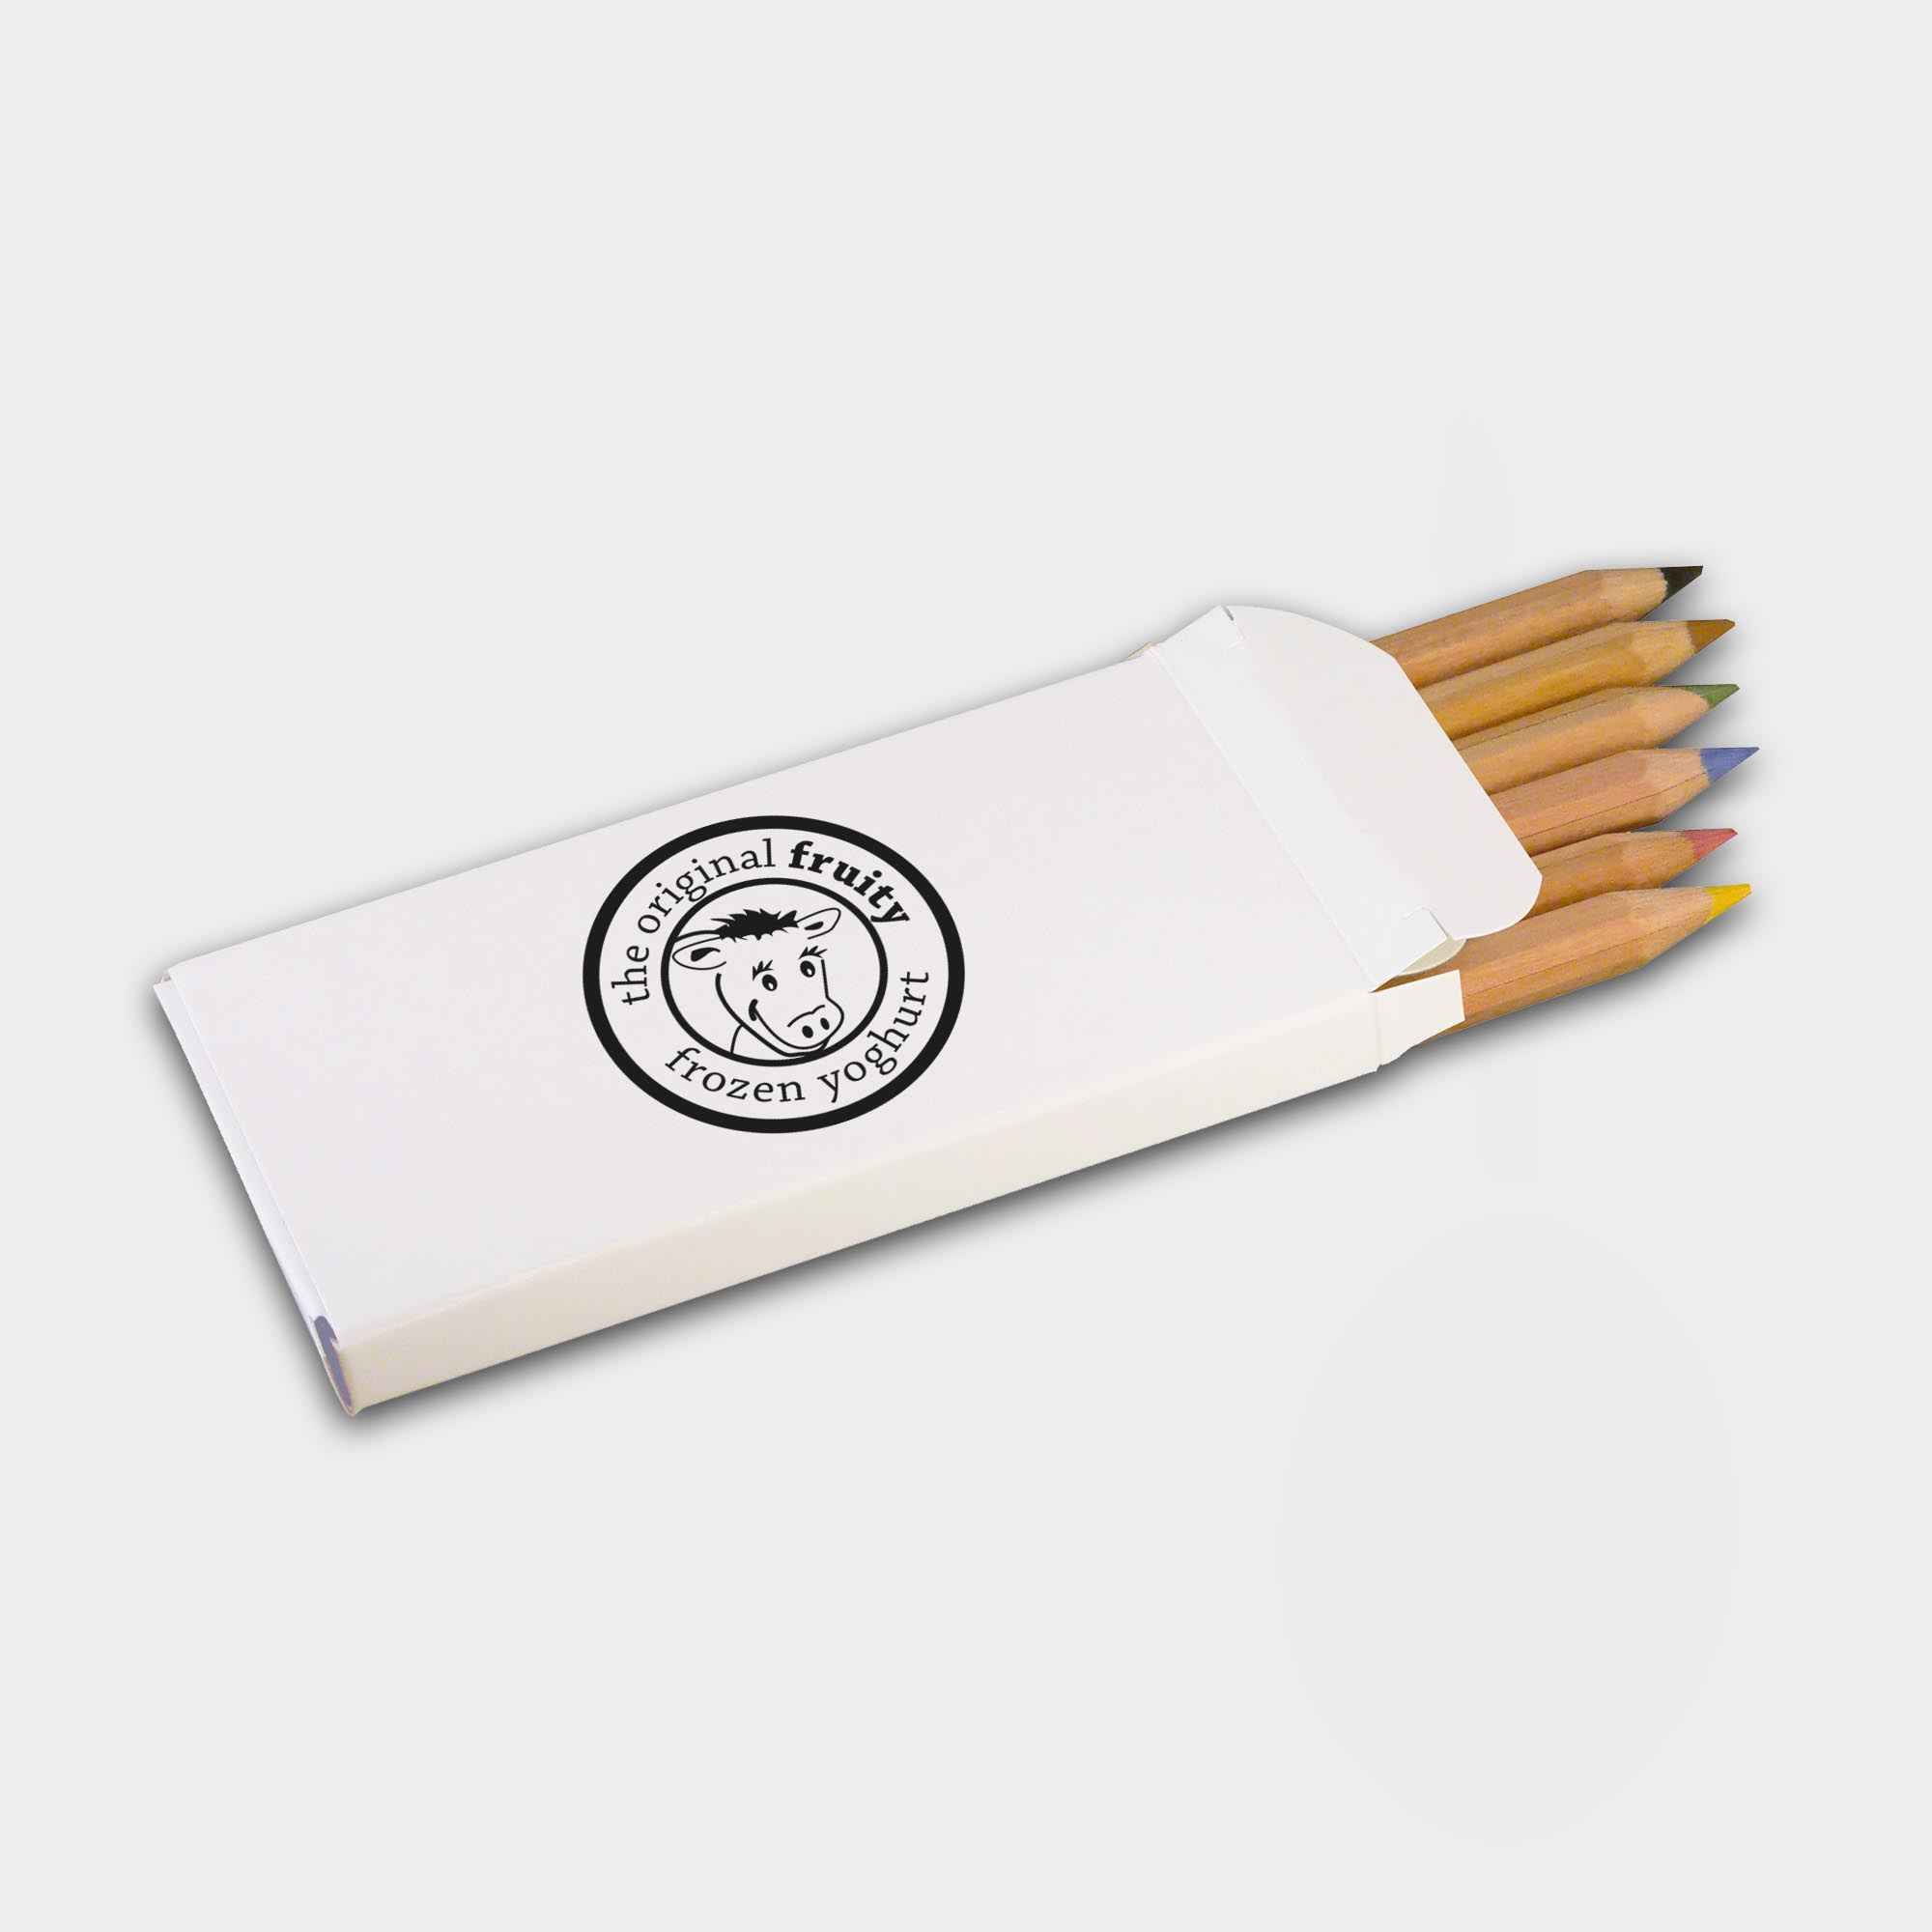 Promotional Pack of 6 Small Colouring Pencils